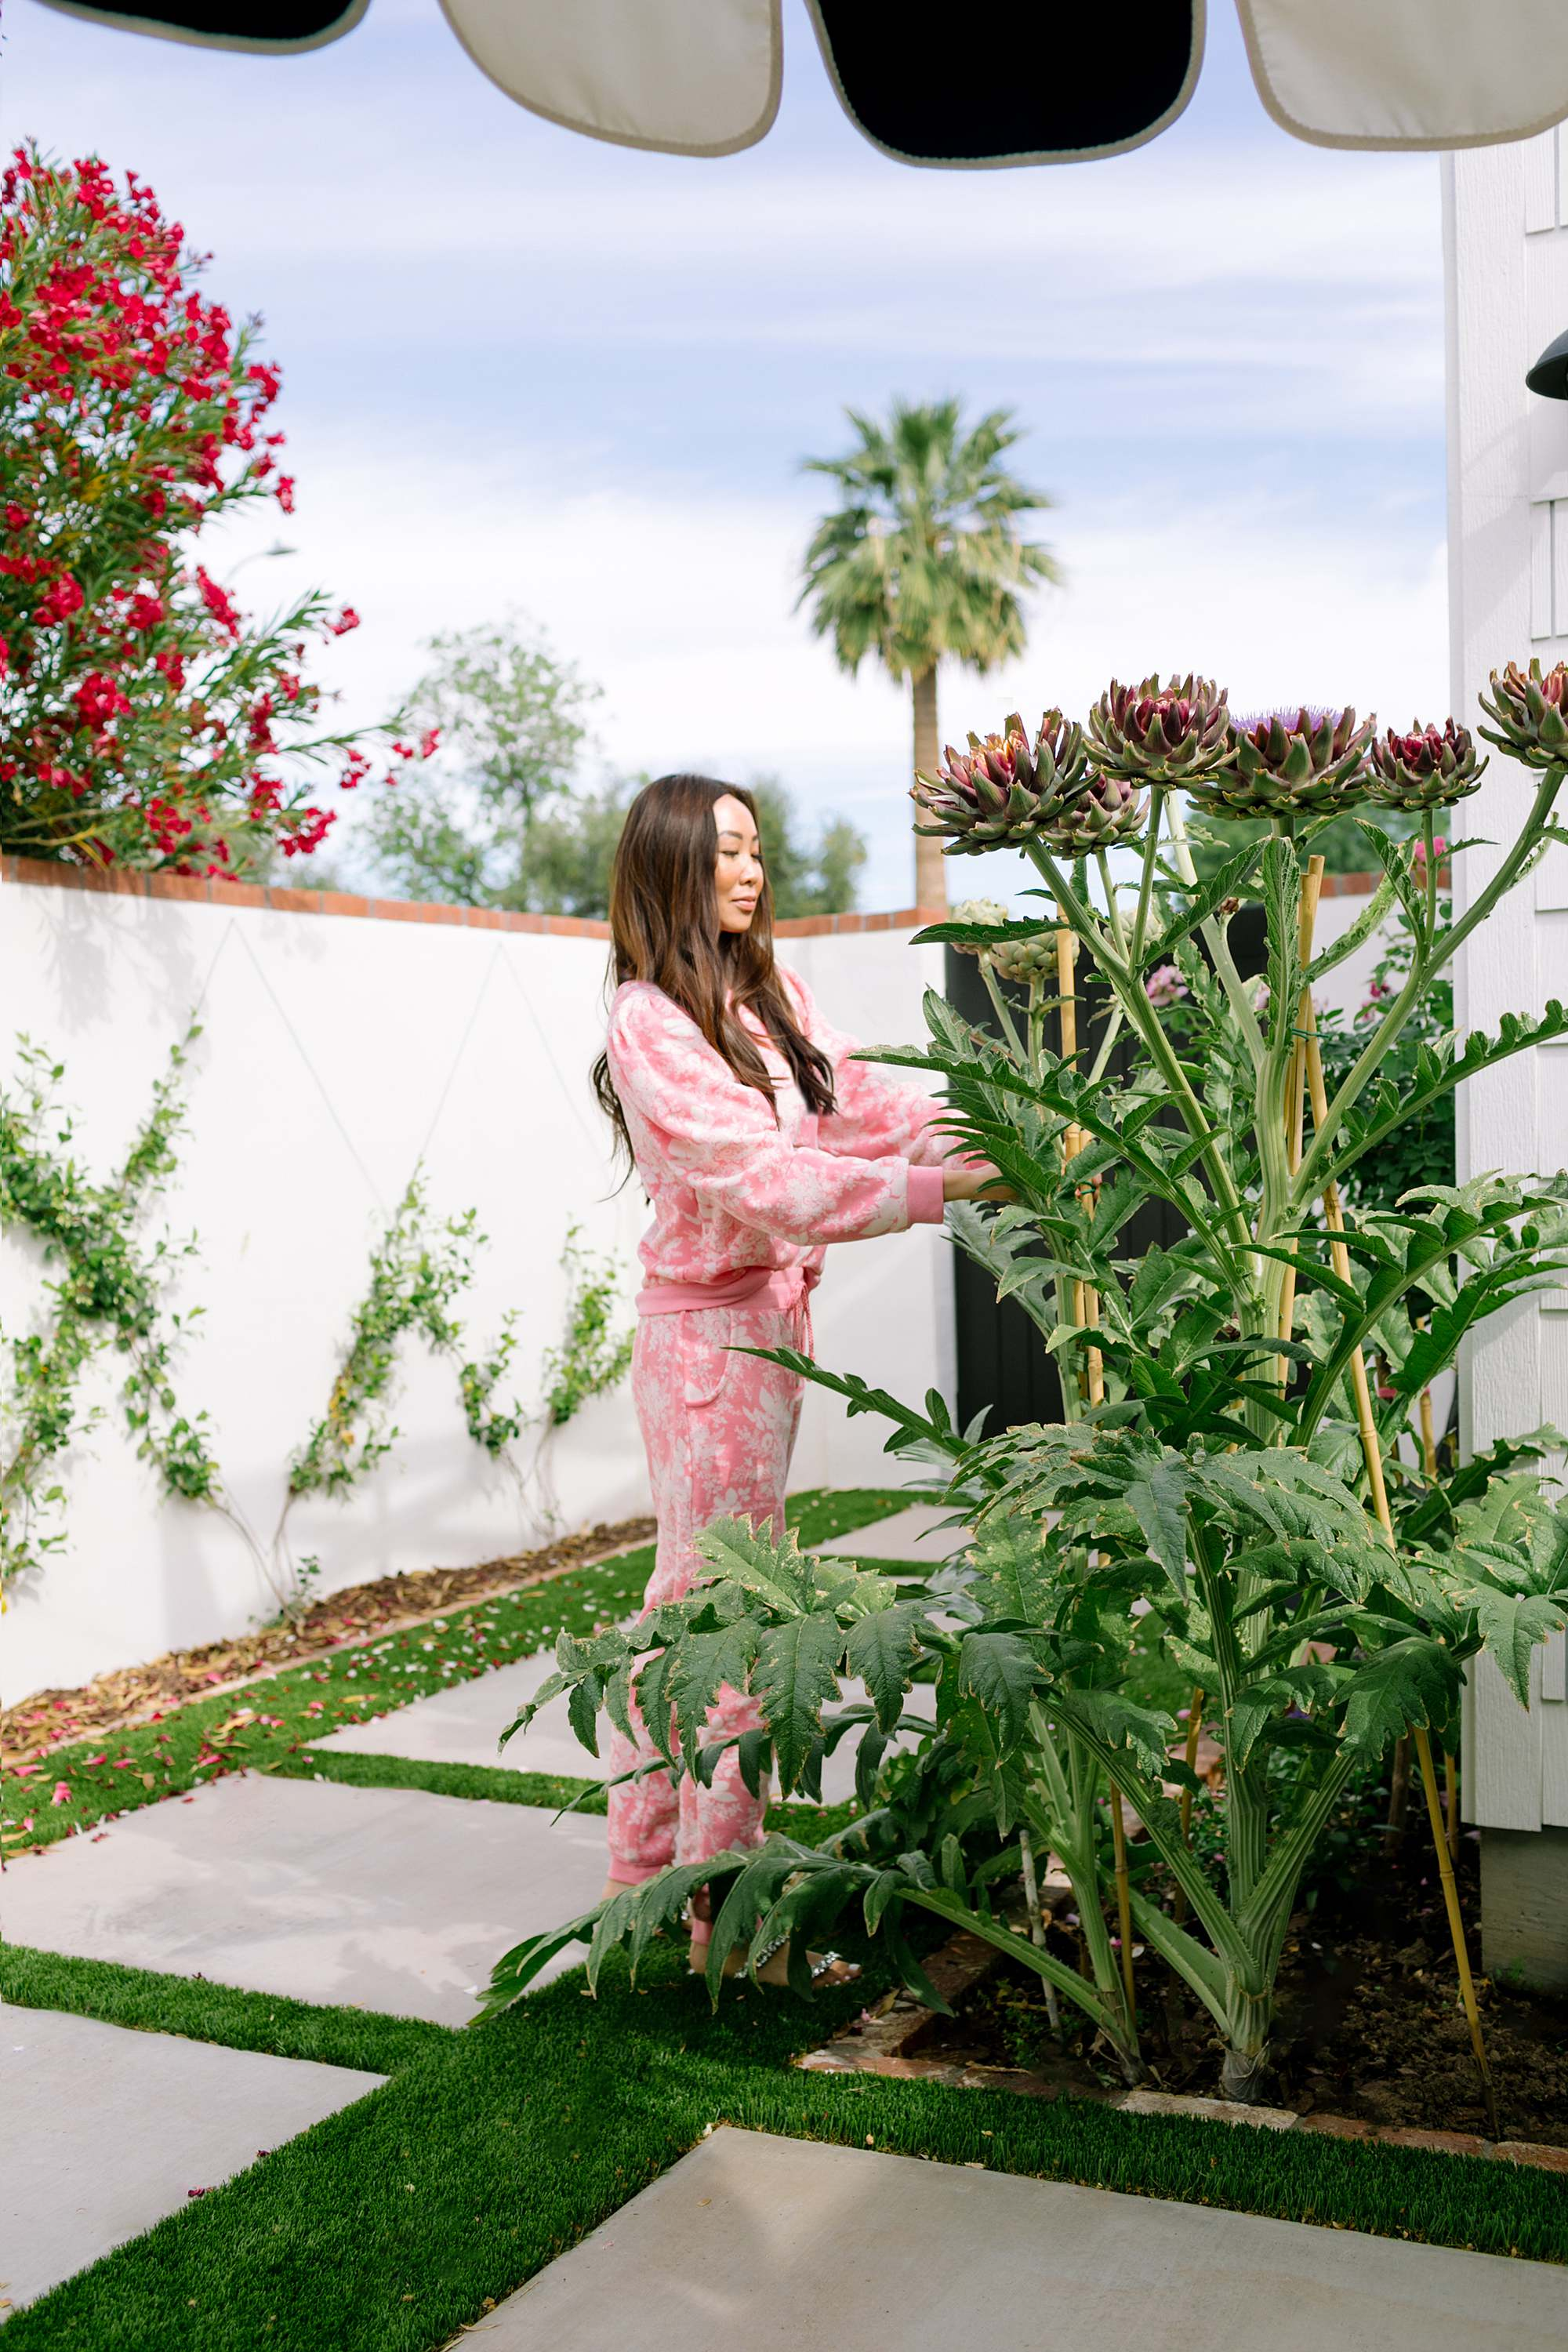 woman in pink floral loungewear standing next to large blooming artichoke plant - Diana Elizabeth blog based in Phoenix a home and garden lifestyle blog